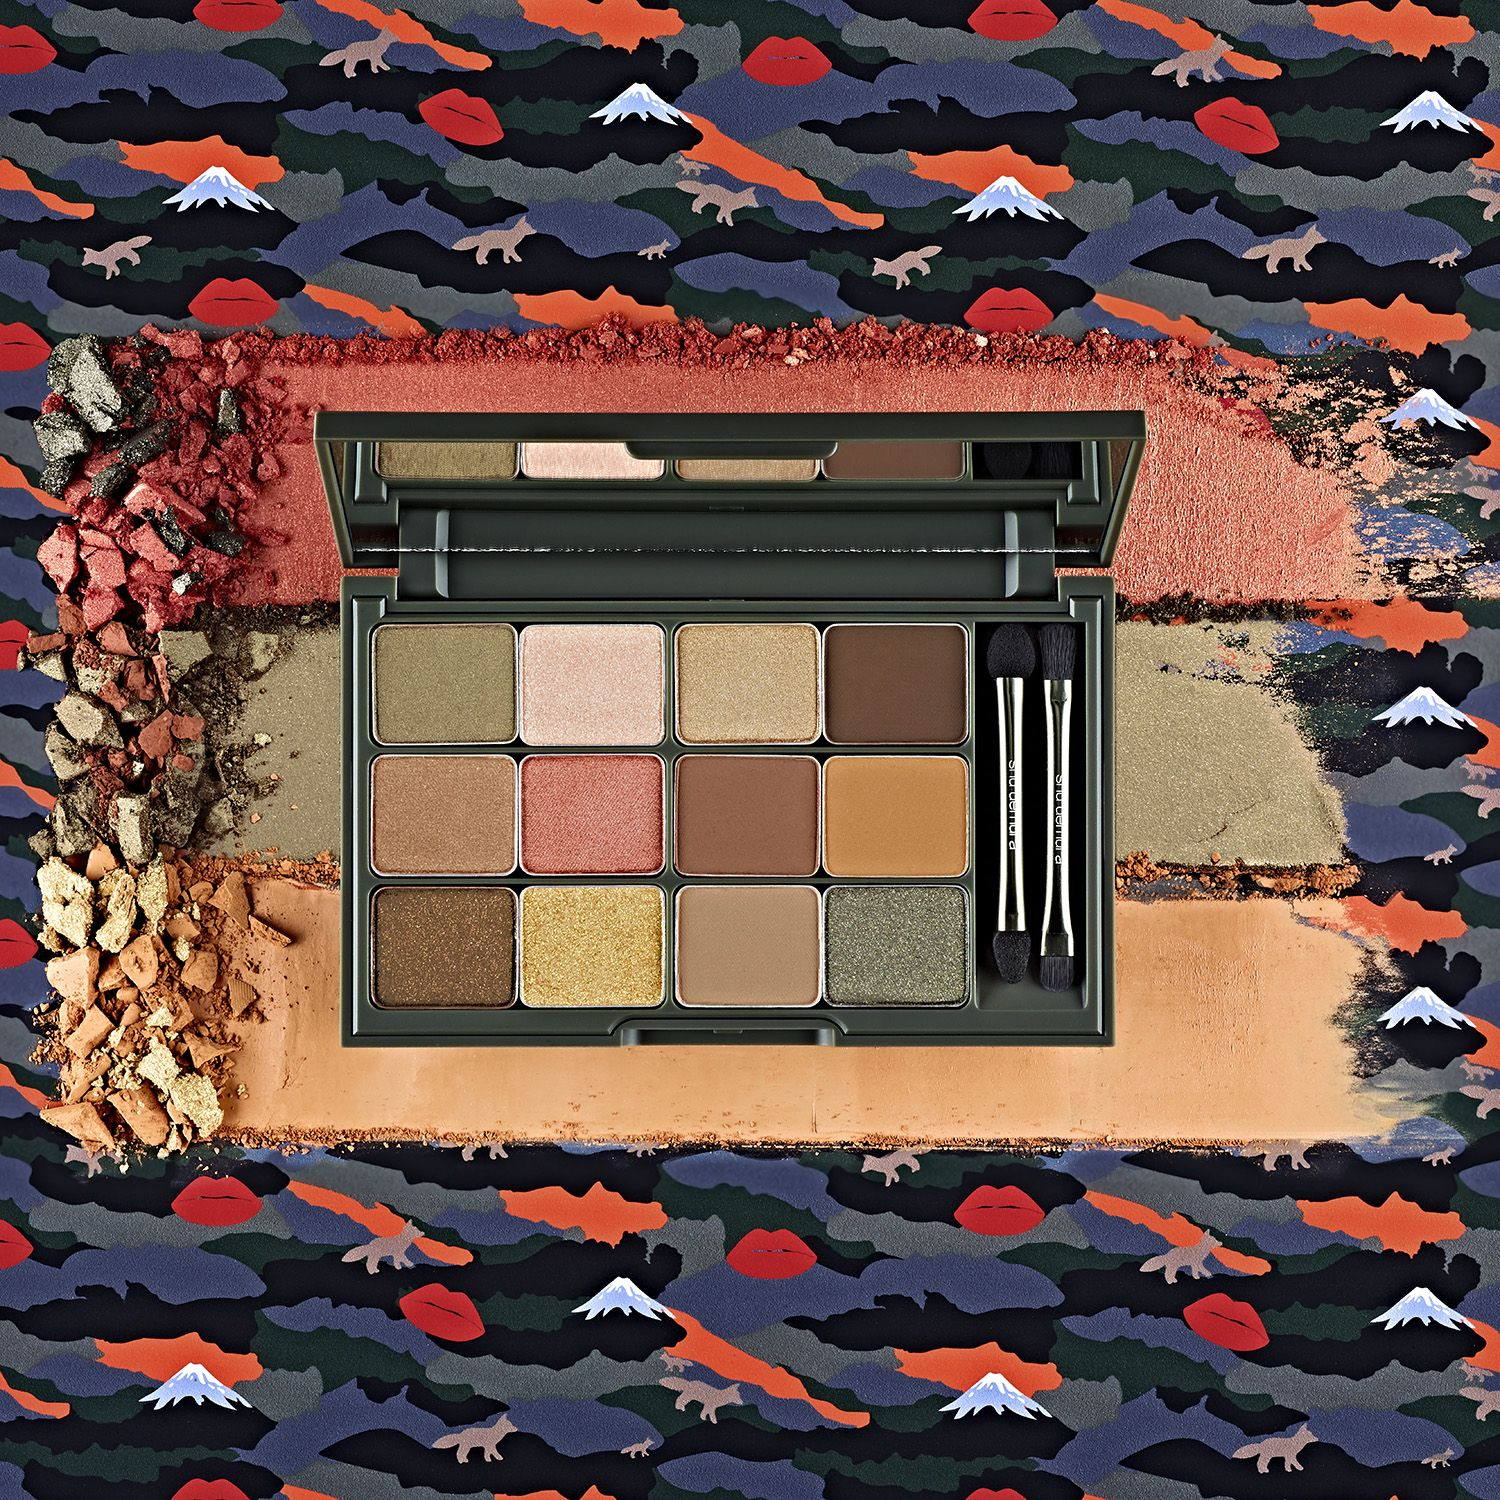 Camouflage Inspired Eye Palette In Earthy Tones Designed By Maison Kitsune For Shu Uemura The Palette Features Images Of Mt Fuji Lips And A Kitsune Fox The T